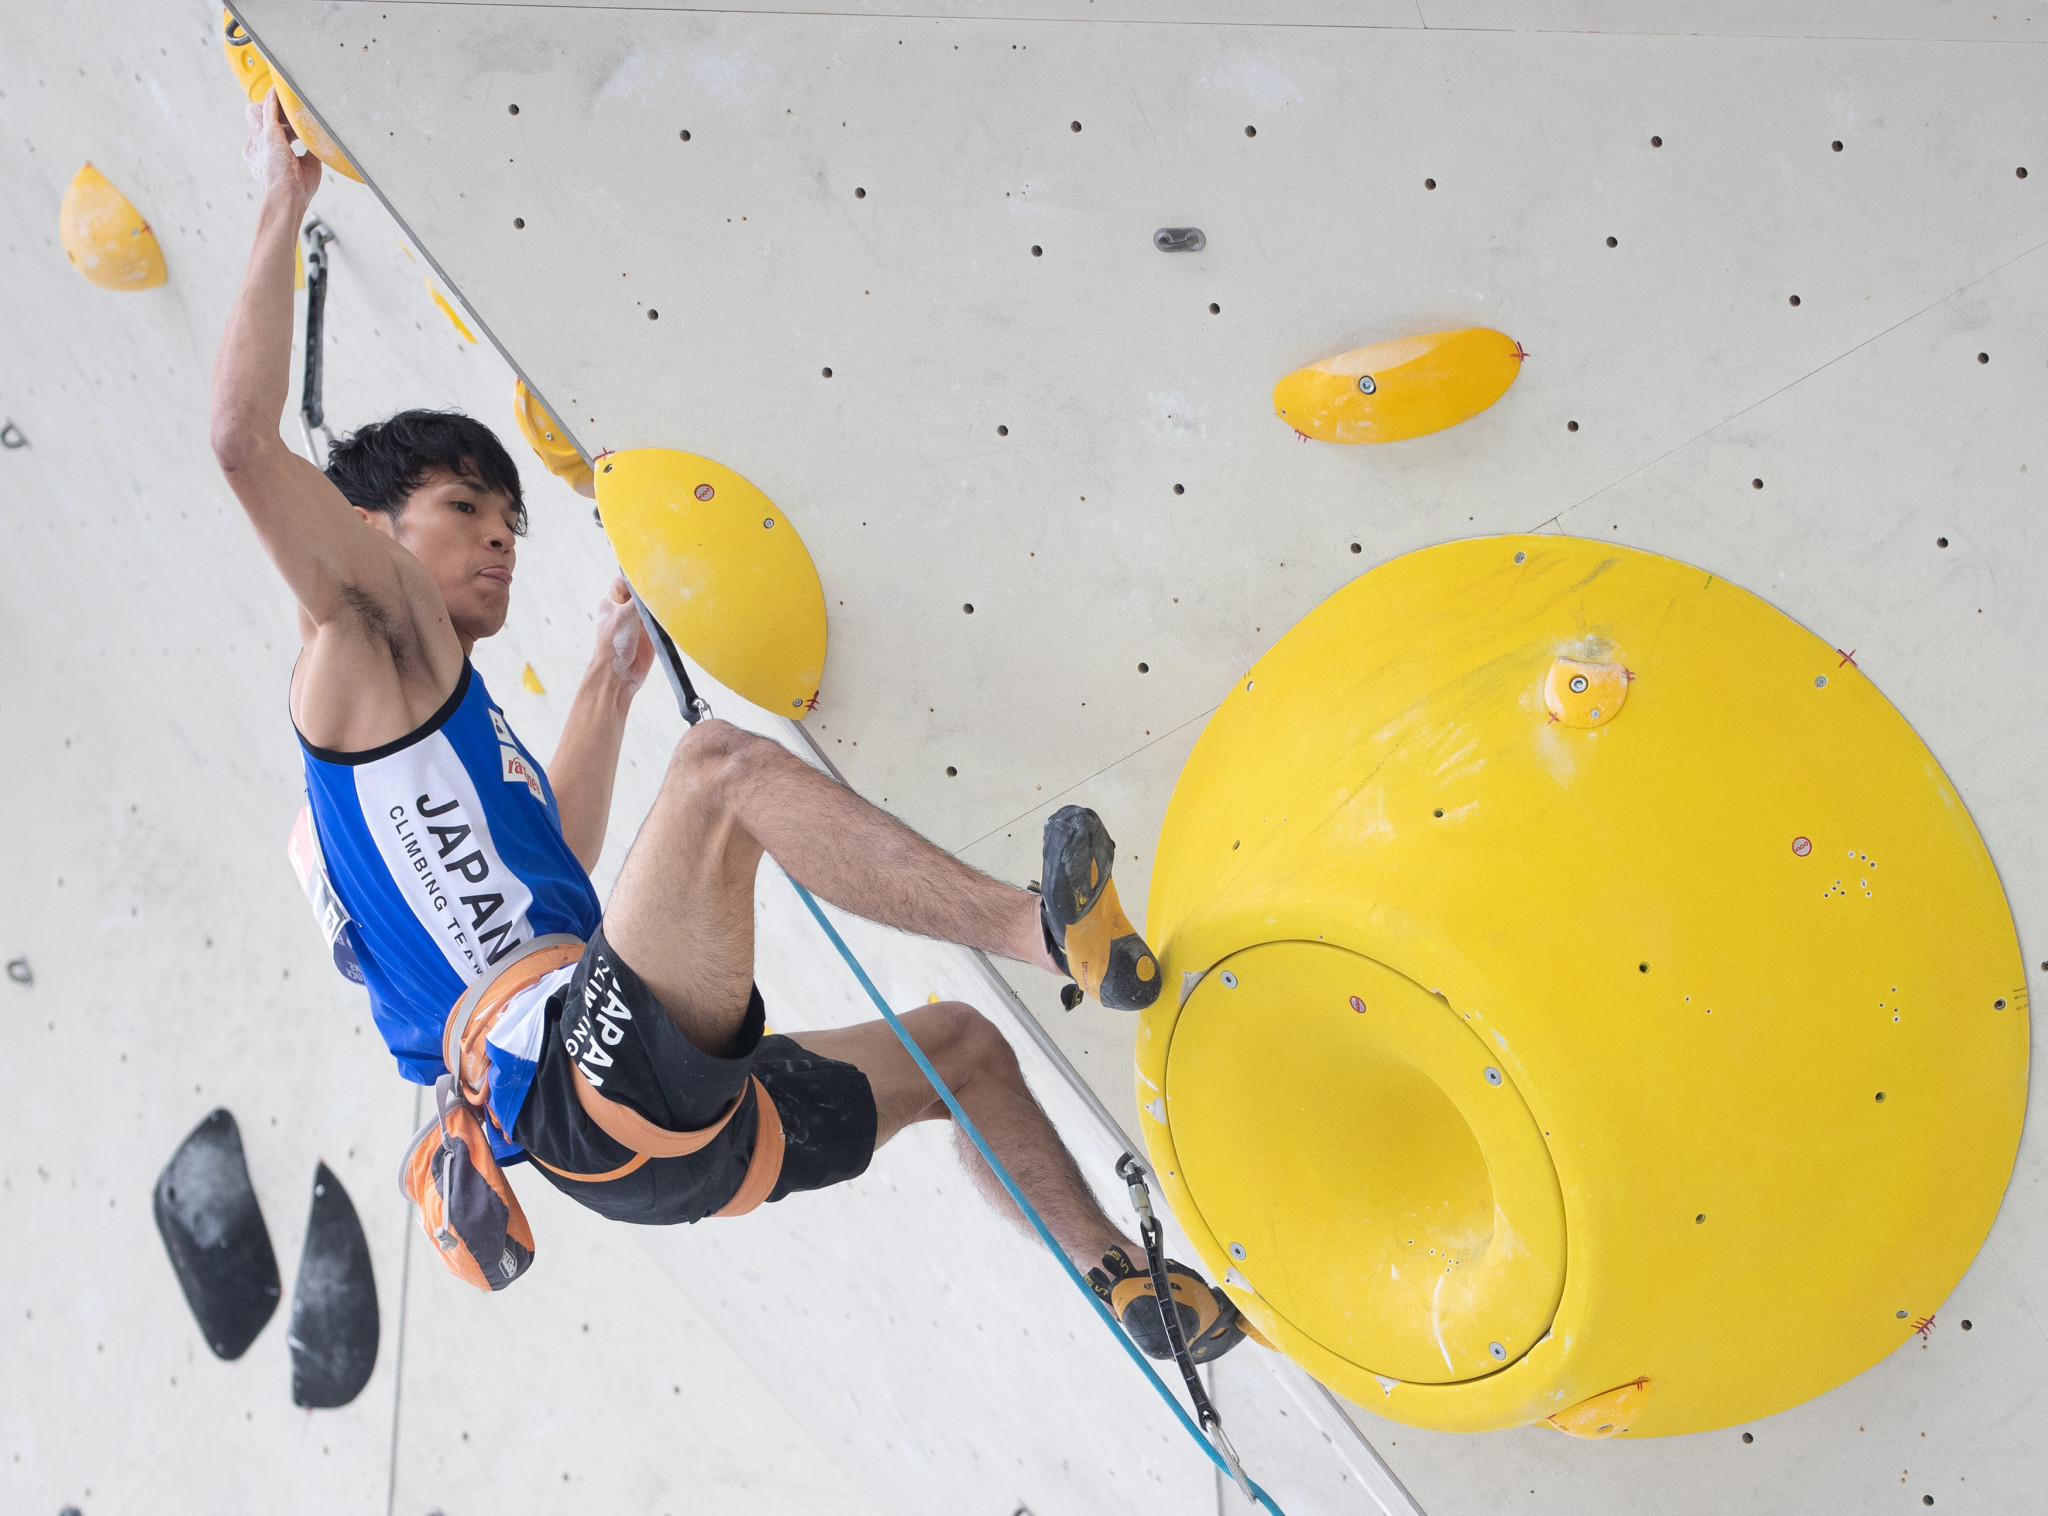 Hosts dominate closing combined events at IFSC Asian Championships in Kurayoshi